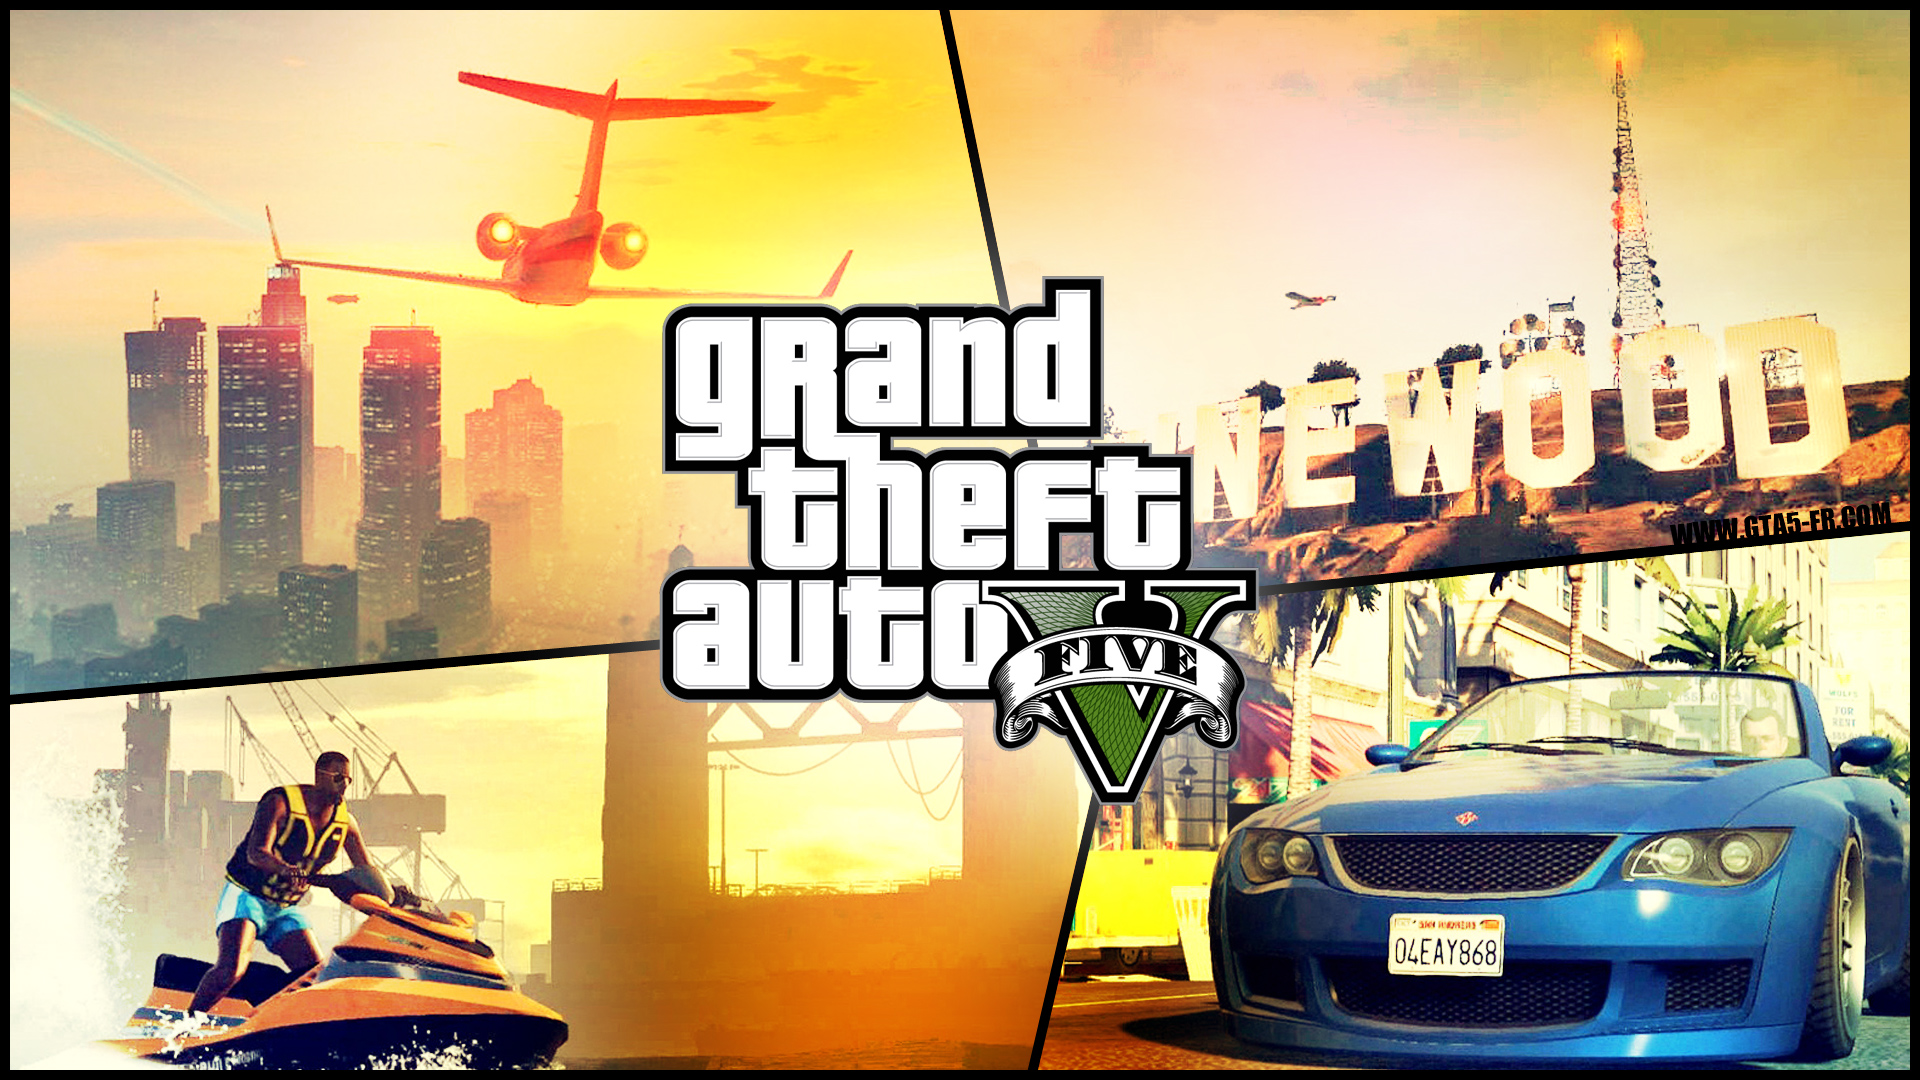 WallpapersWide Image Gta V Hd Wallpaper Crying Sad Pictures Zoom 1920x1080